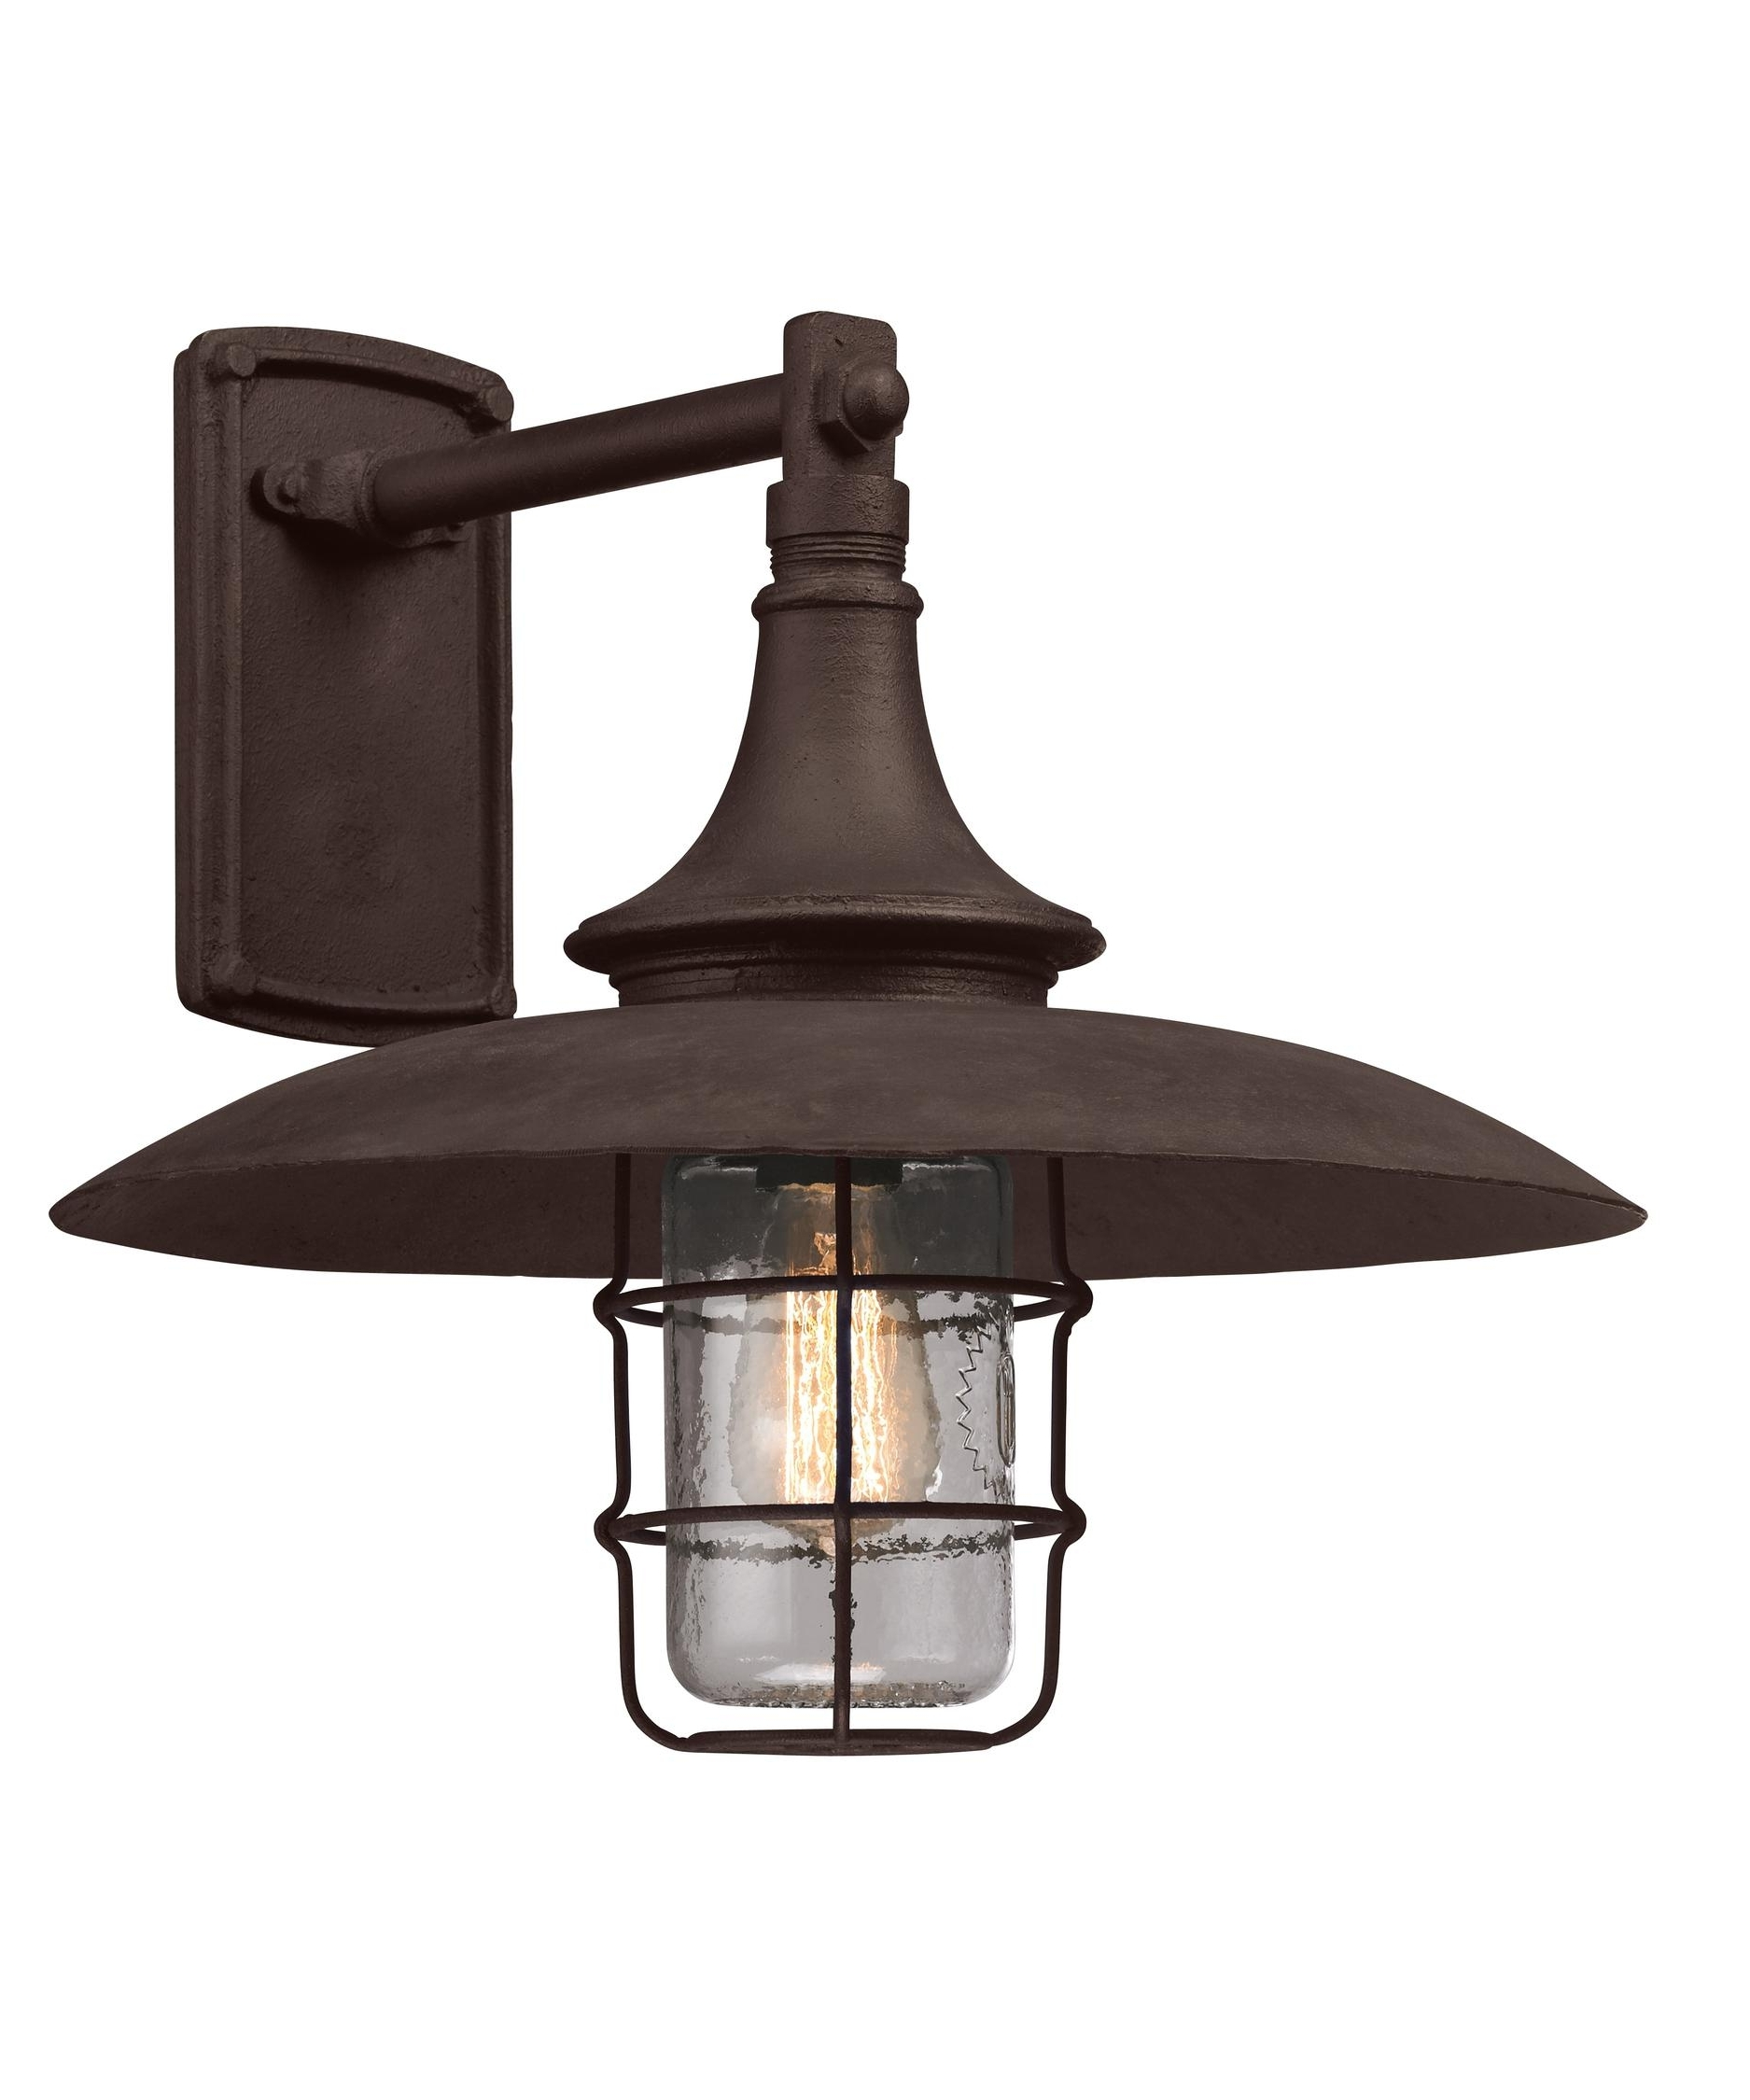 Popular Troy Lighting B3222 Allegany 16 Inch Wide 1 Light Outdoor Wall Light Within Antique Outdoor Wall Lighting (View 16 of 20)